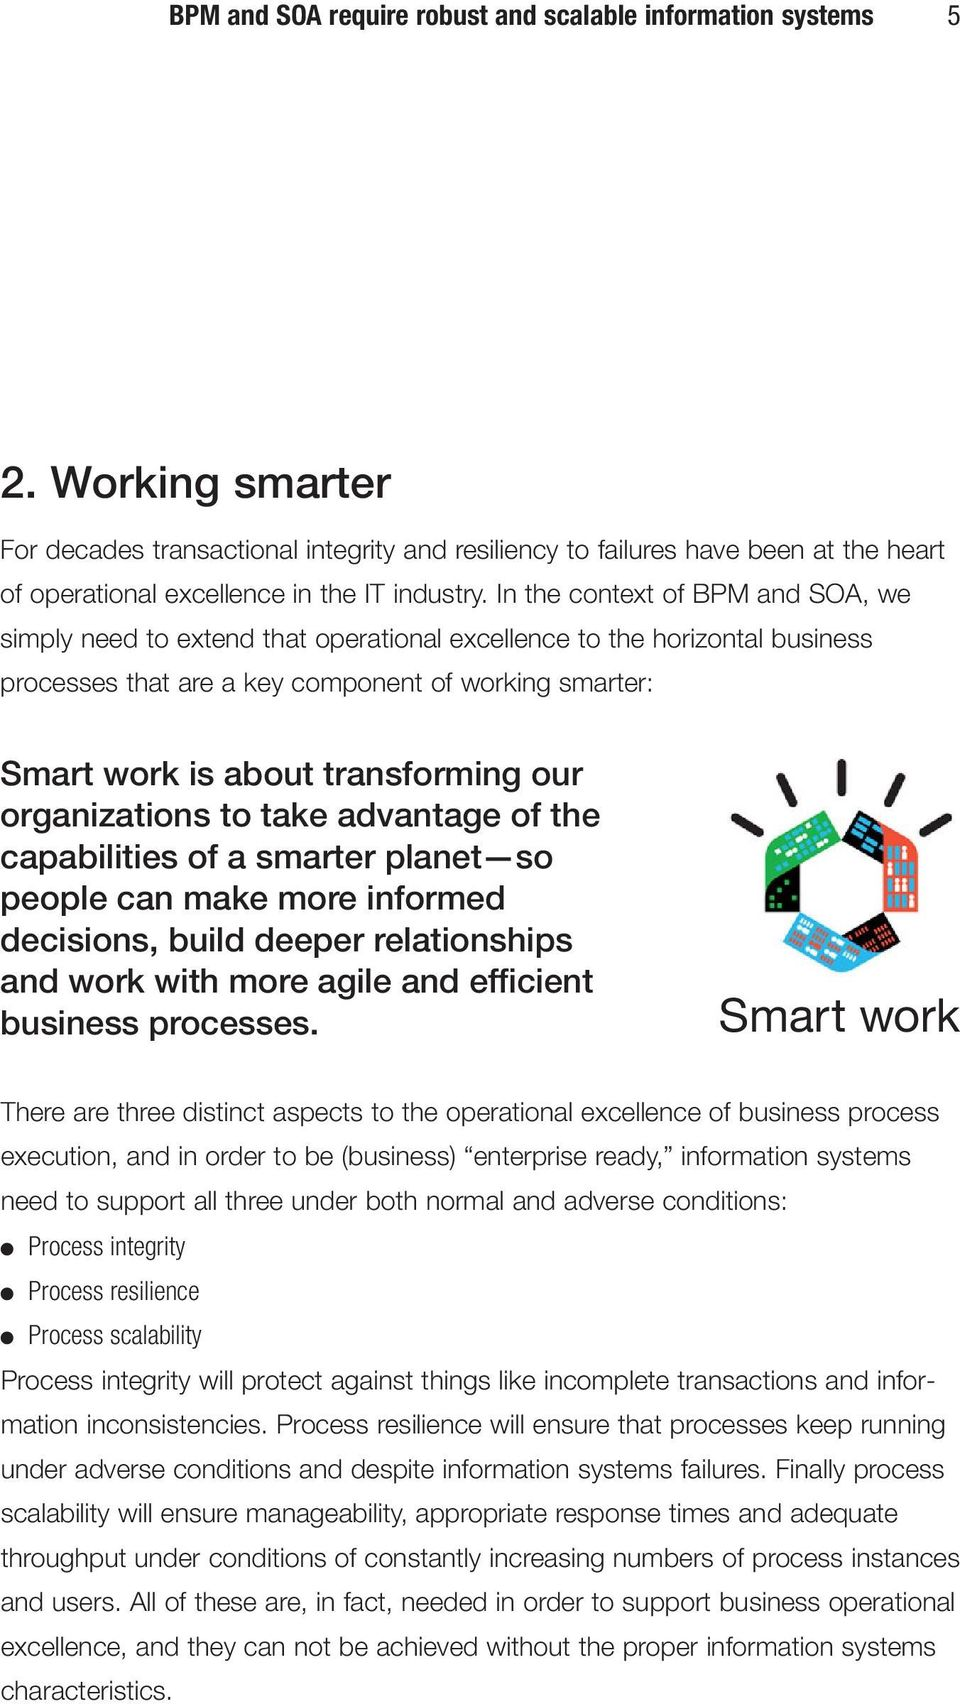 In the context of BPM and SOA, we simply need to extend that operational excellence to the horizontal business processes that are a key component of working smarter: Smart work is about transforming